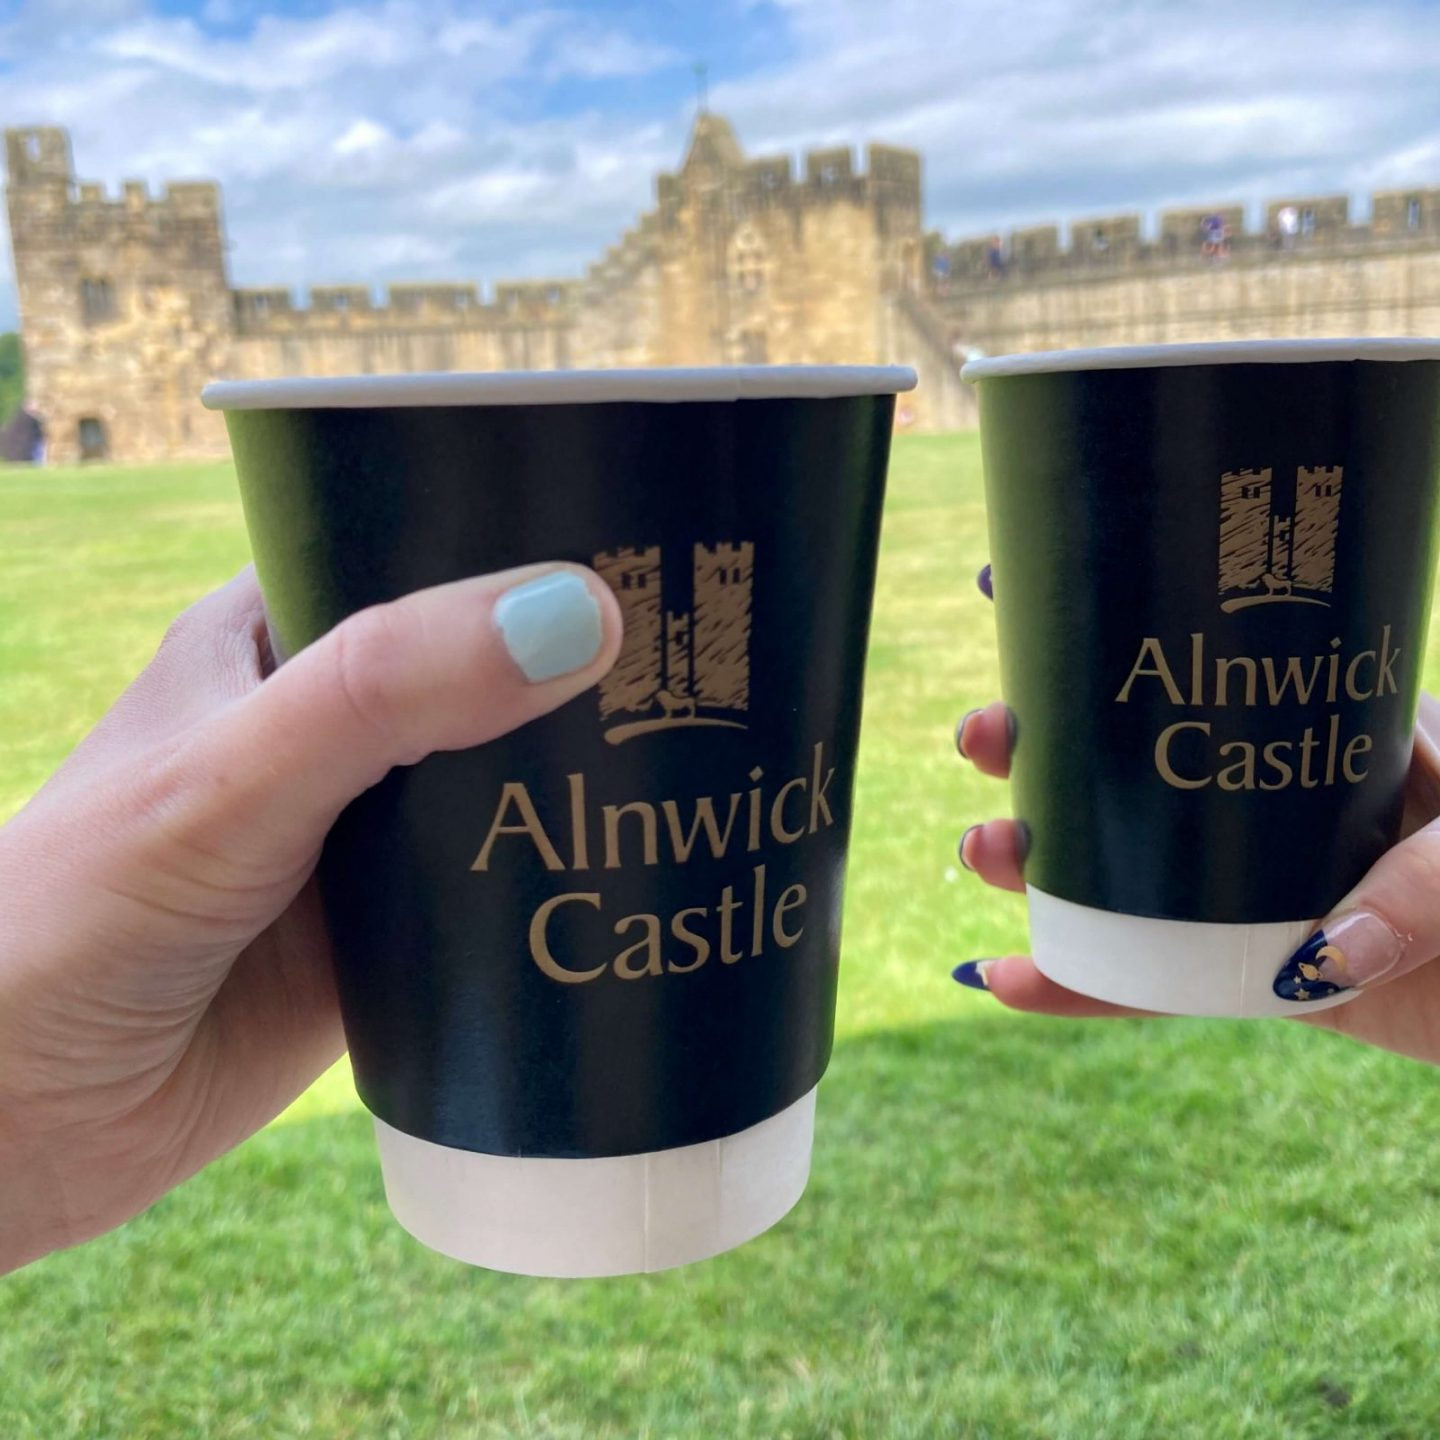 two takeaway coffee cups with alnwick castle logo, hands holding them up in front of stunning castle walls in background